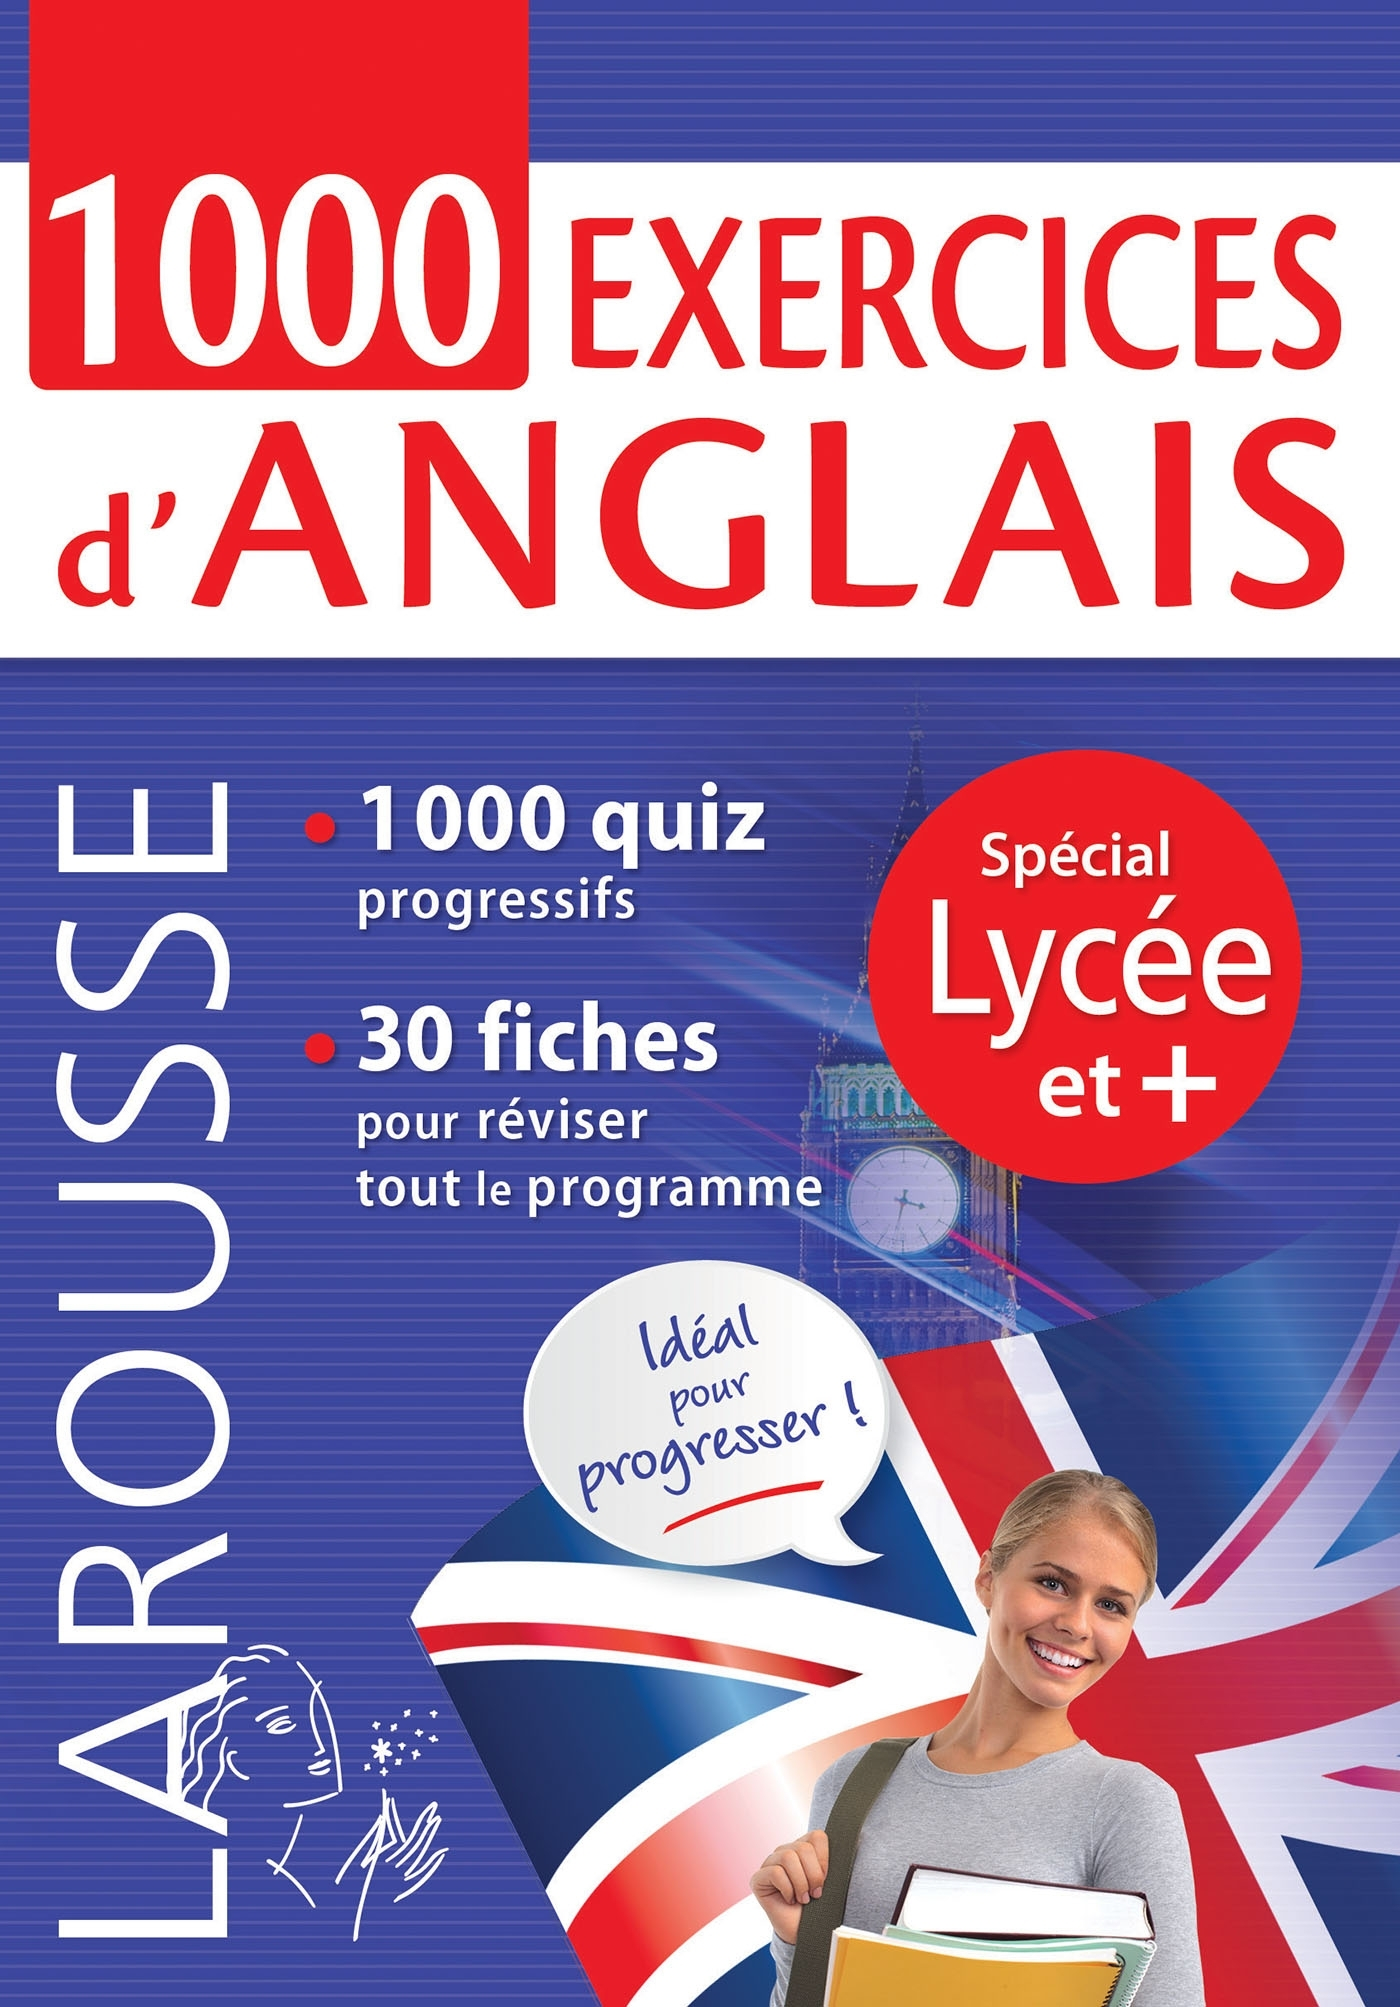 1000 EXERCICES D'ANGLAIS, SPECIAL LYCEE ET +